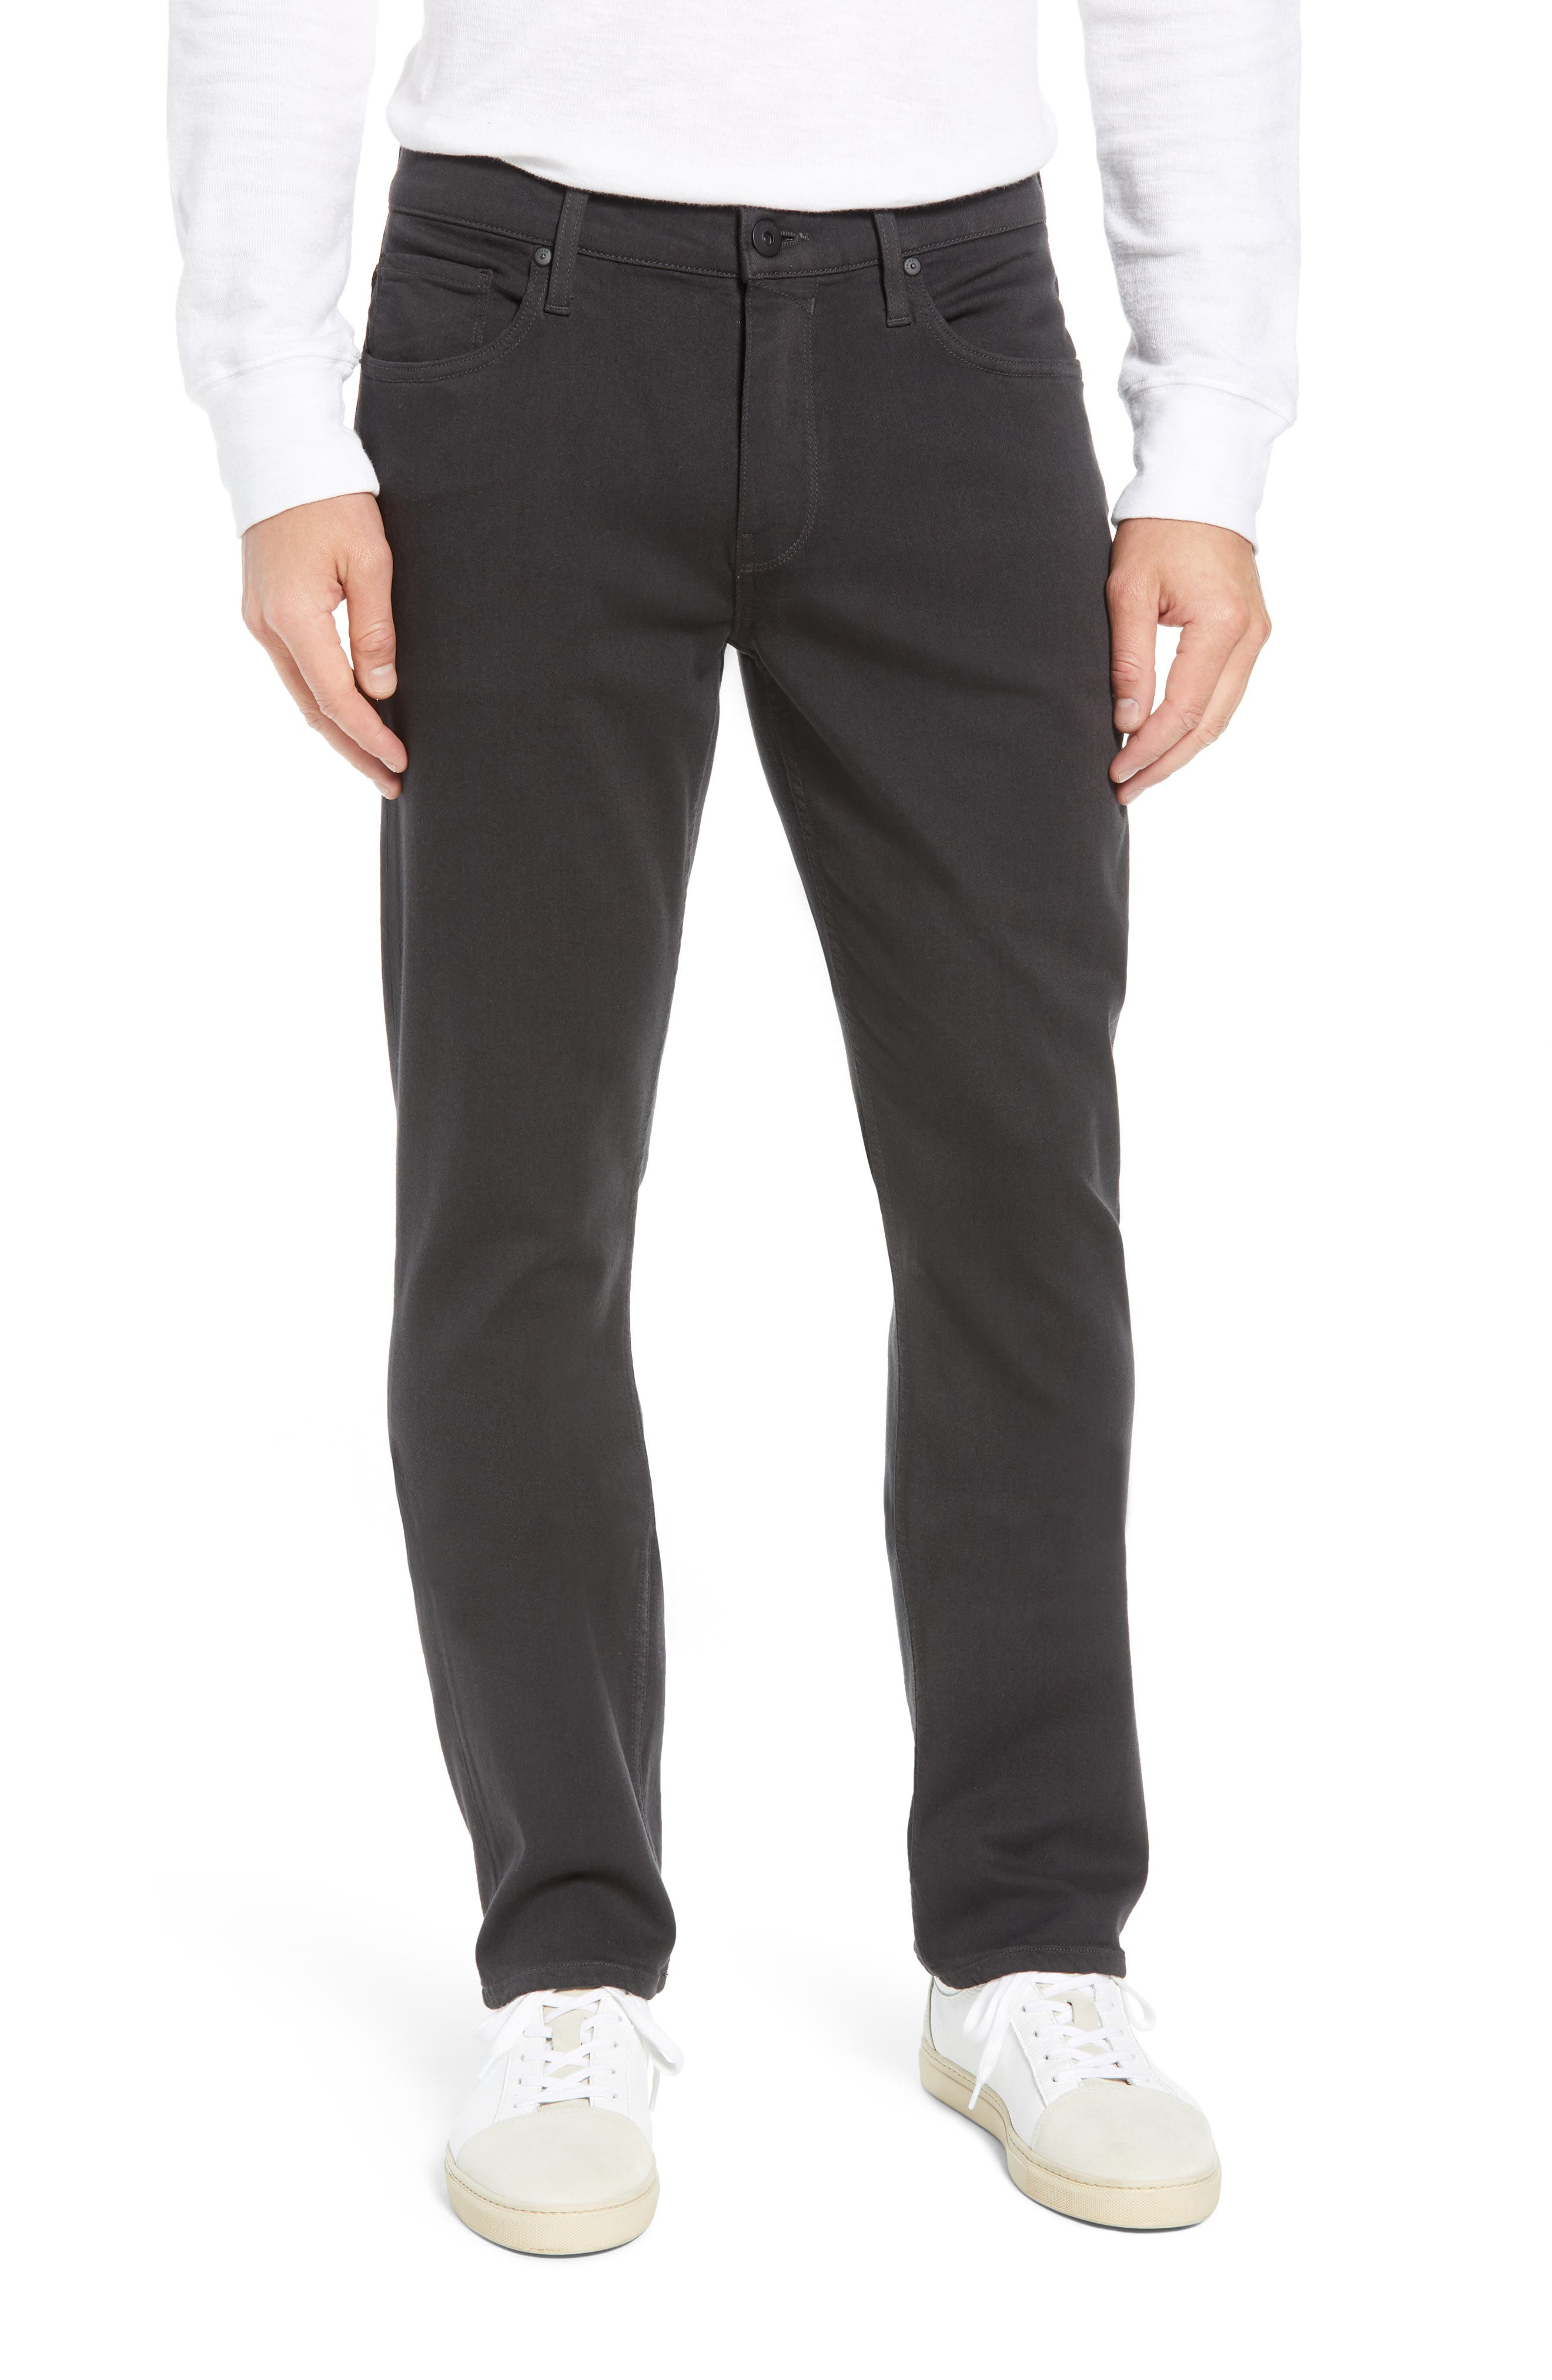 Transcend - Normandie Straight Leg Jeans,                         Main,                         color, MIDNIGHT GREY